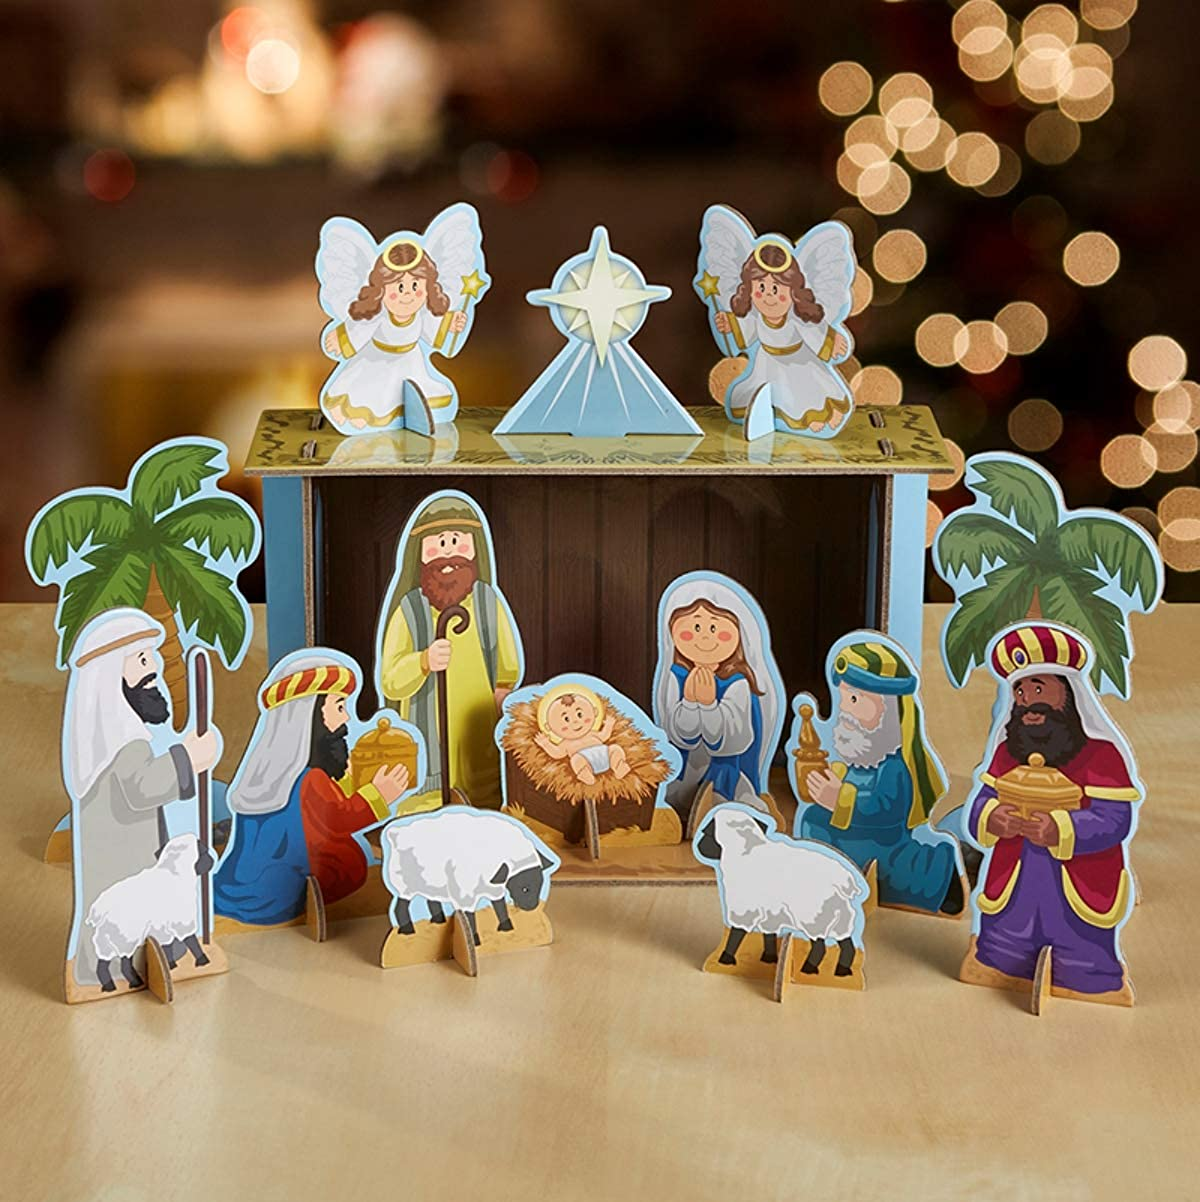 Autom Chipboard 23 Piece Christmas Tabletop Manger Nativity Set